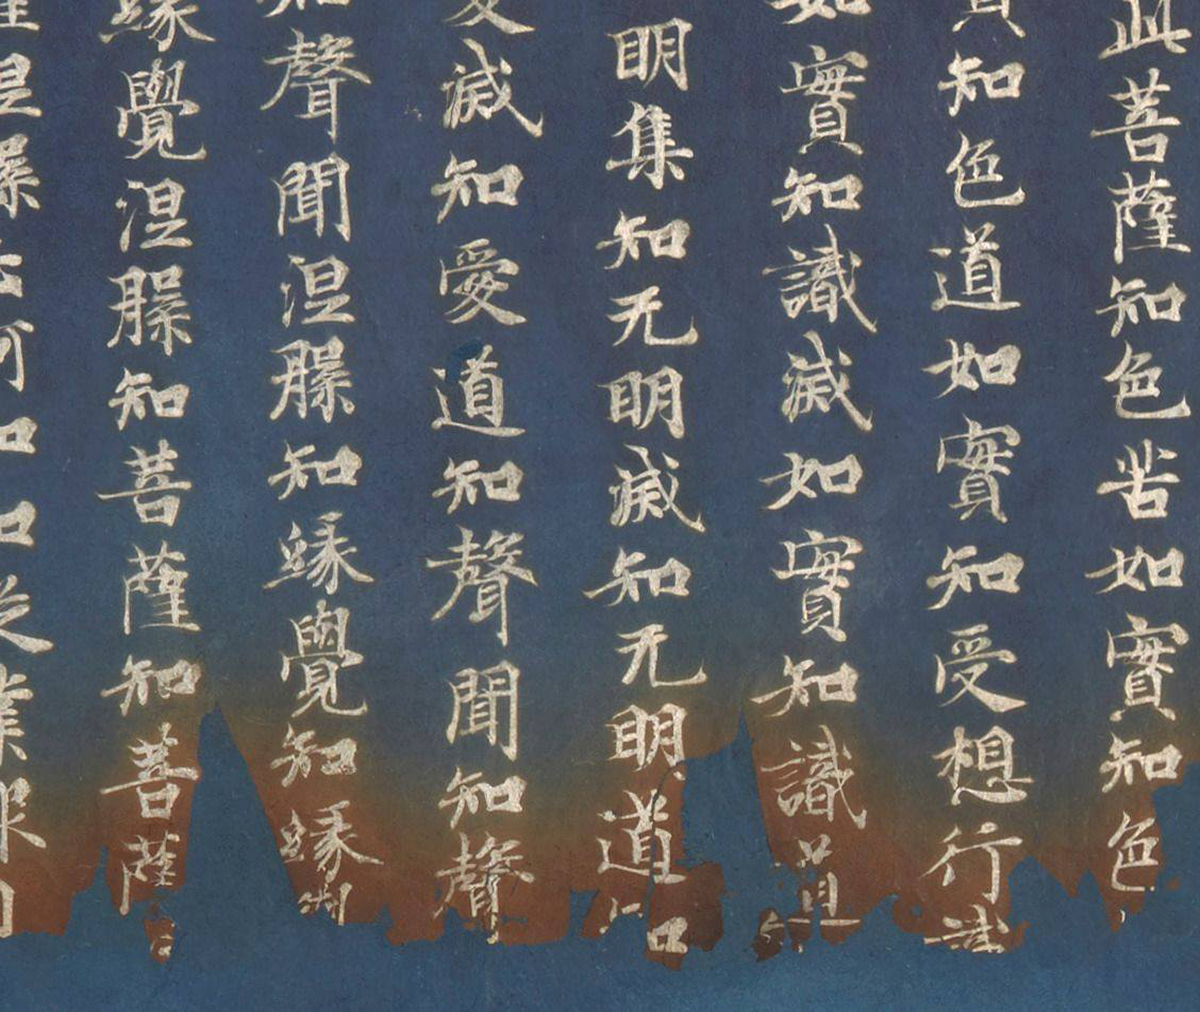 Further detail of the indigo portion of the scrolls showing 7 rows of silver calligraphy characters focusing on the rusty, burnt portion.